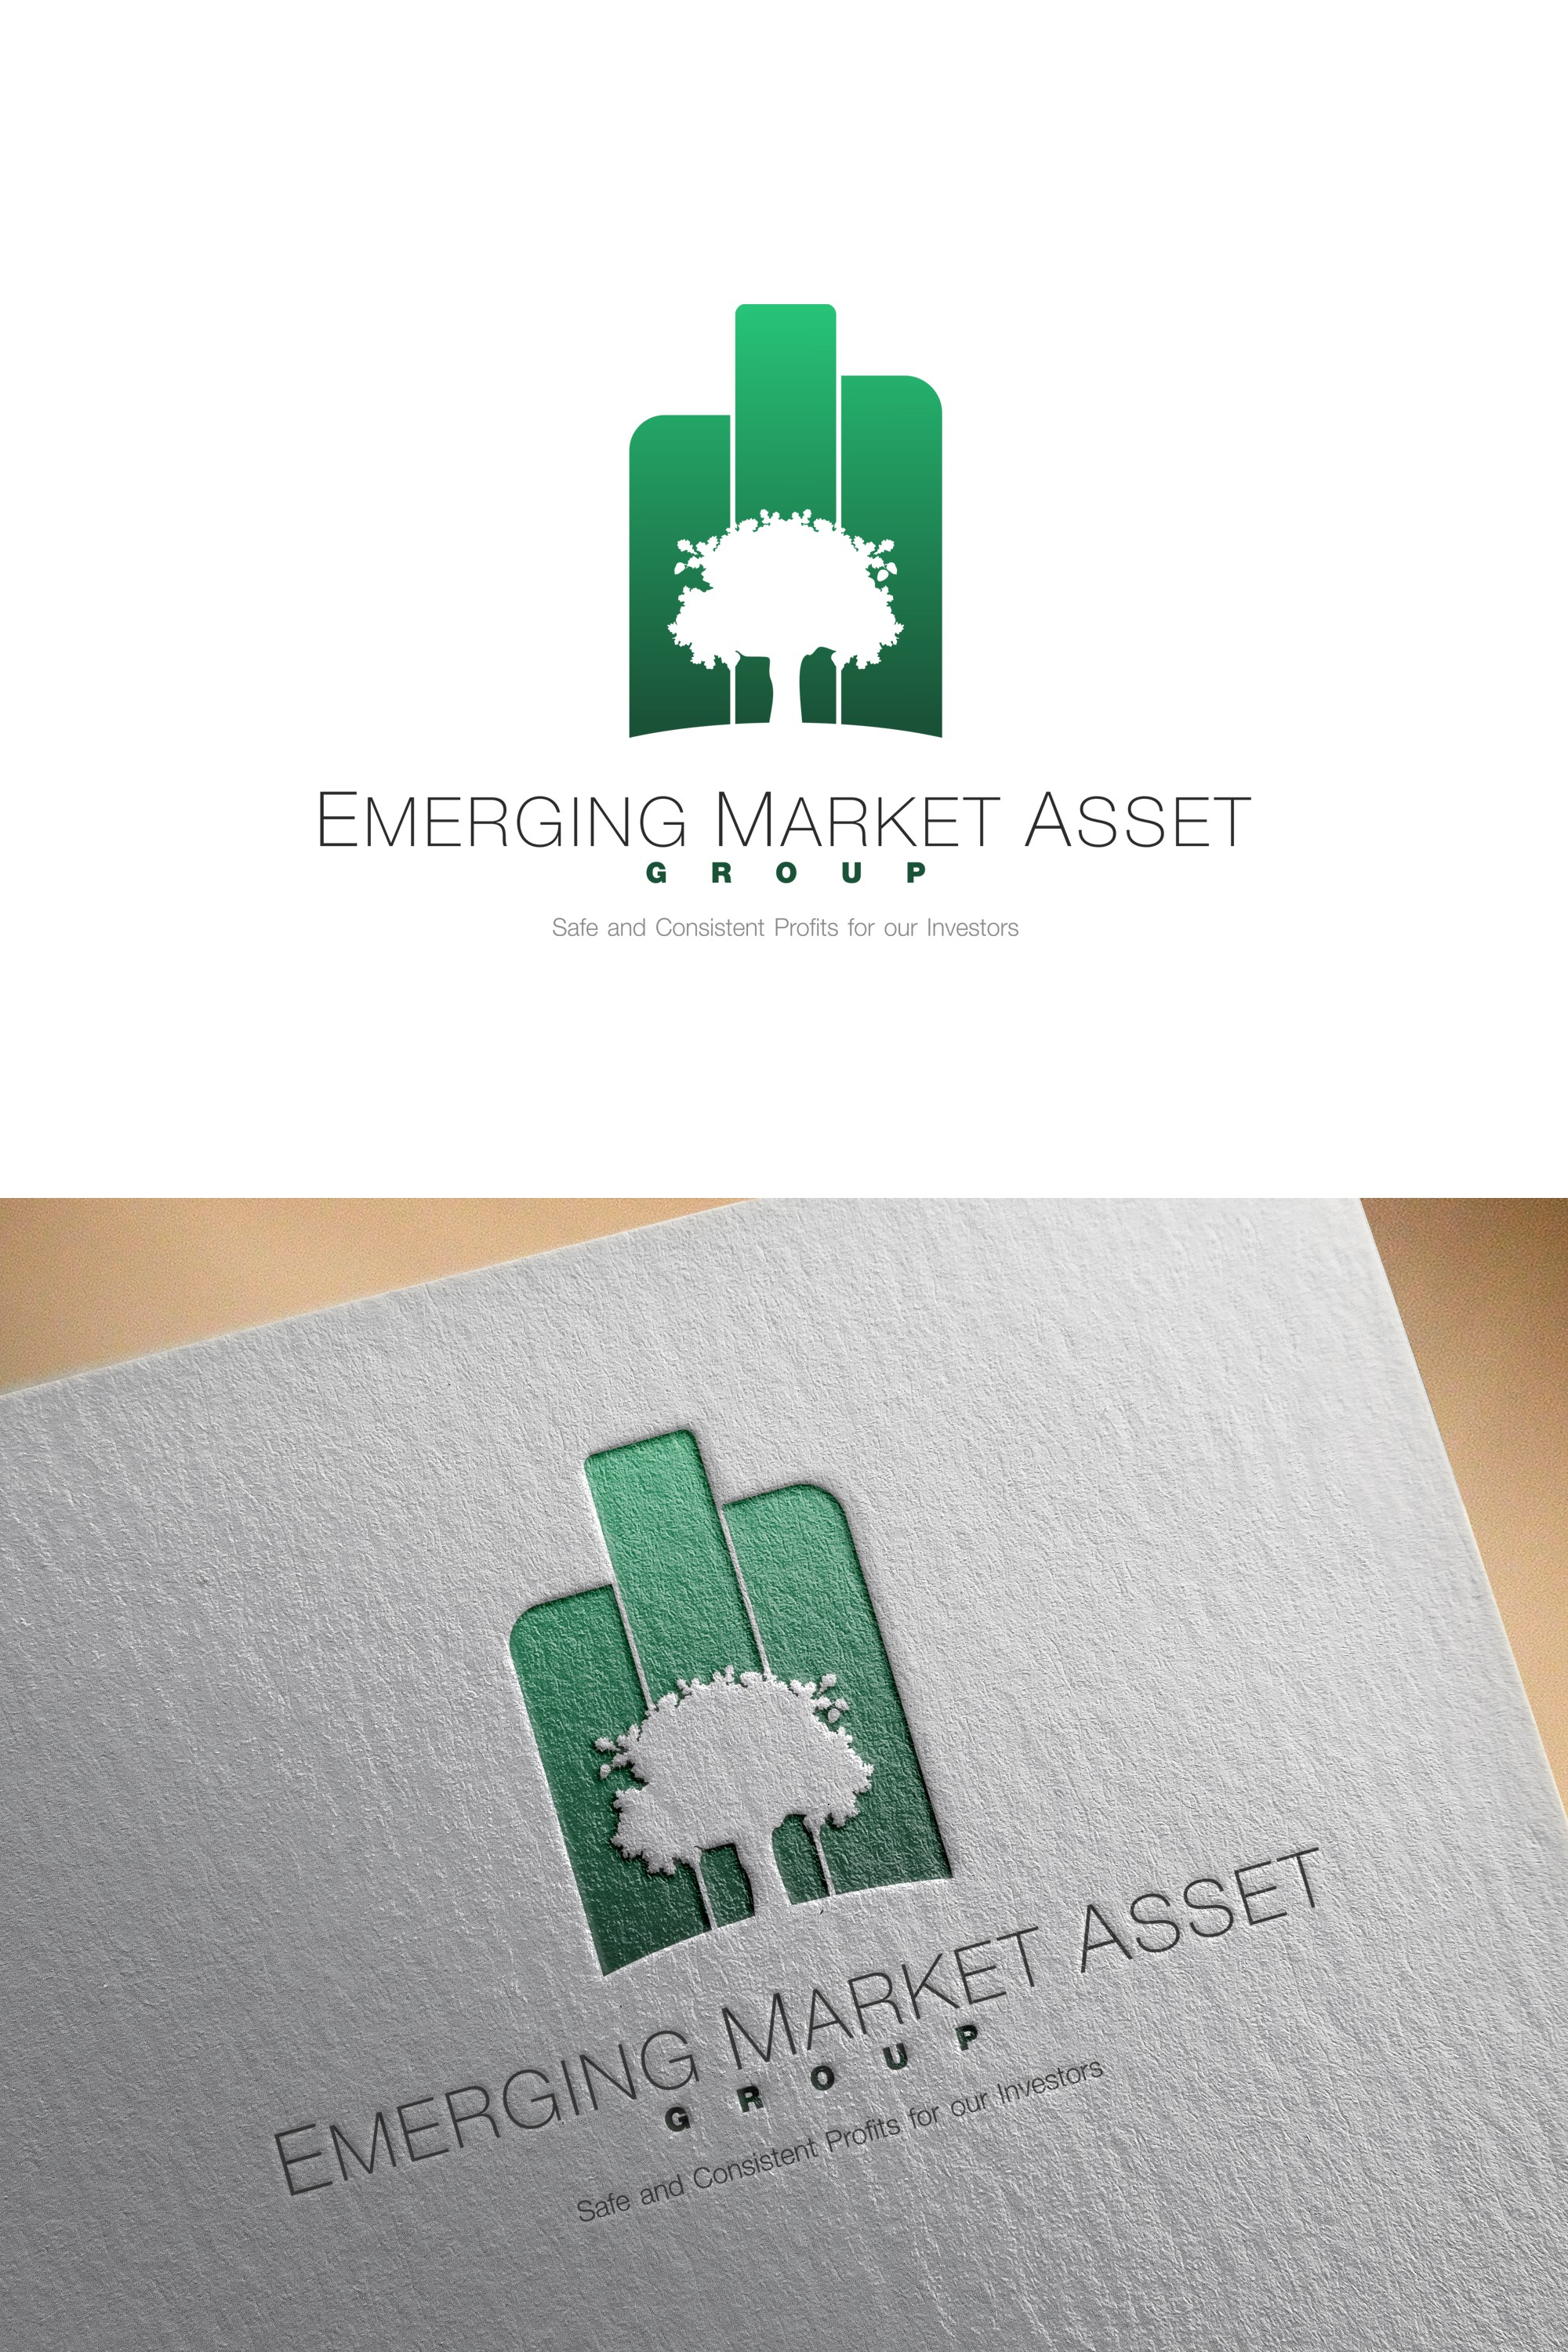 Create a Brand Identity Package for a Real Estate Investment Company